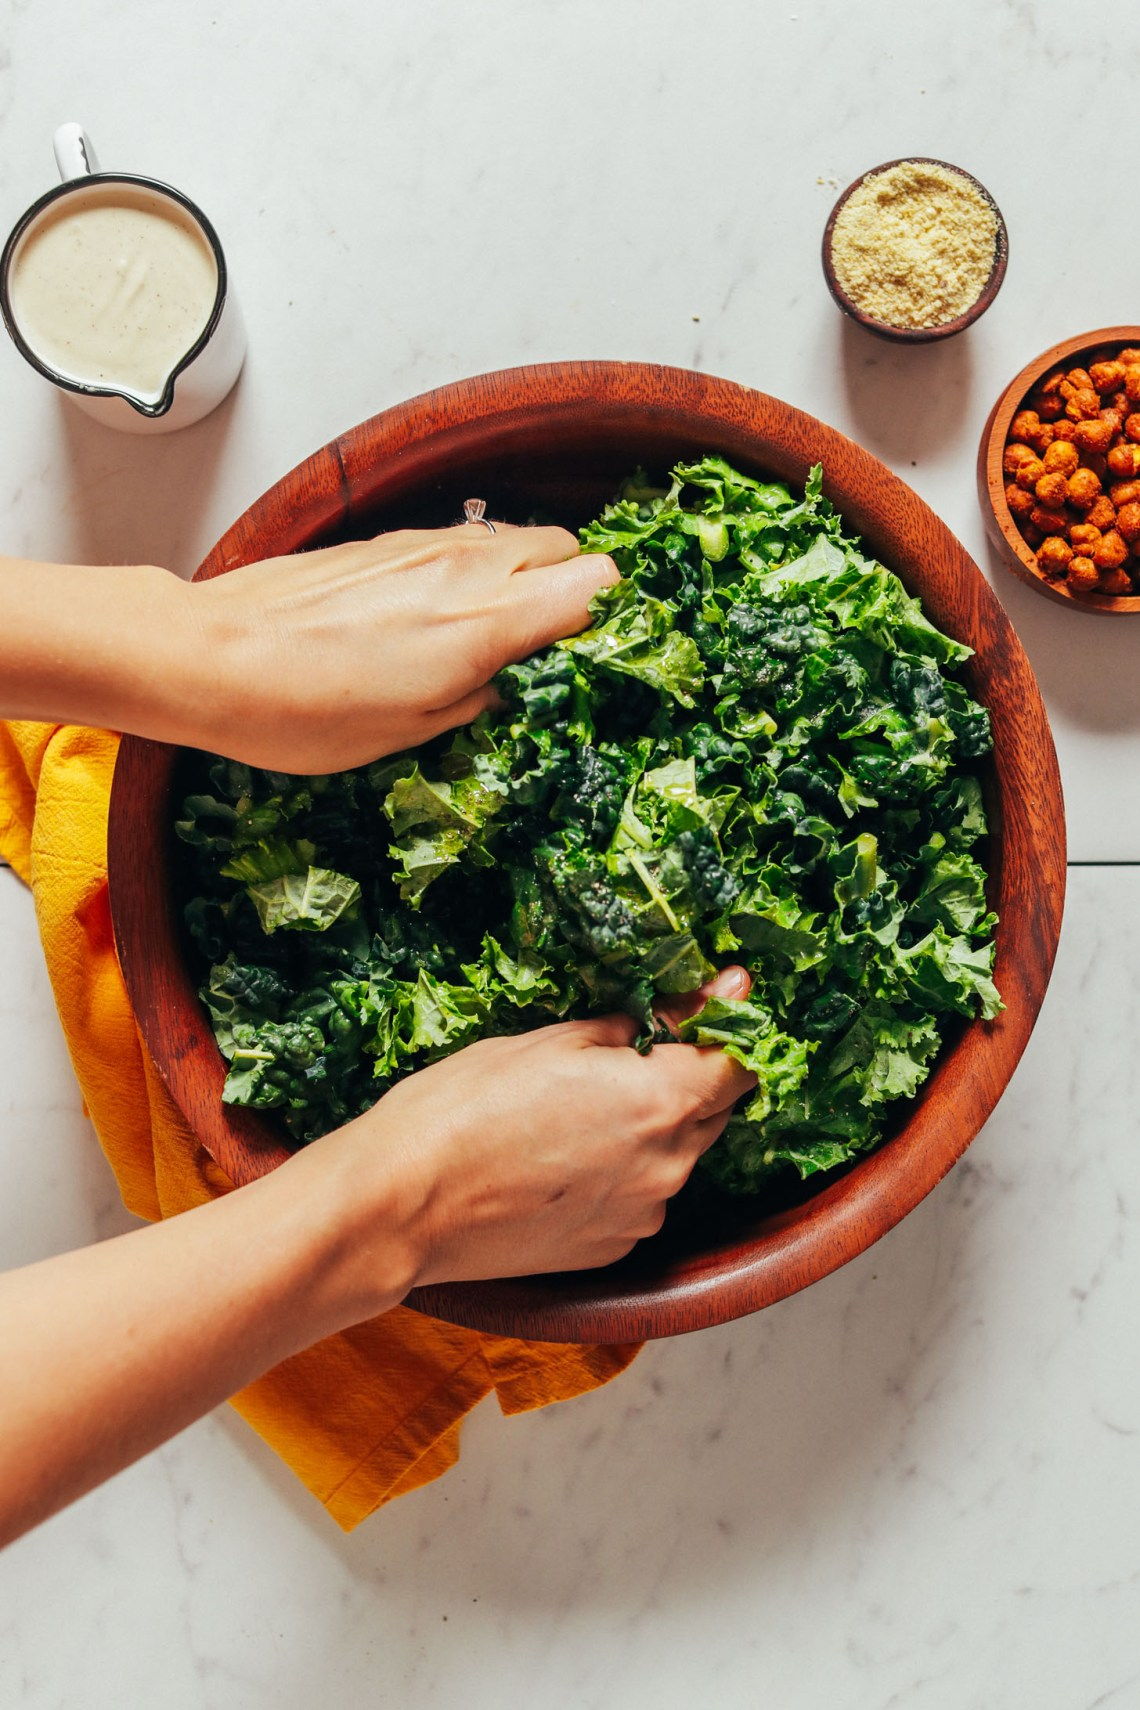 Using our hands to massage a bowl of kale for Chickpea Kale Caesar Salad